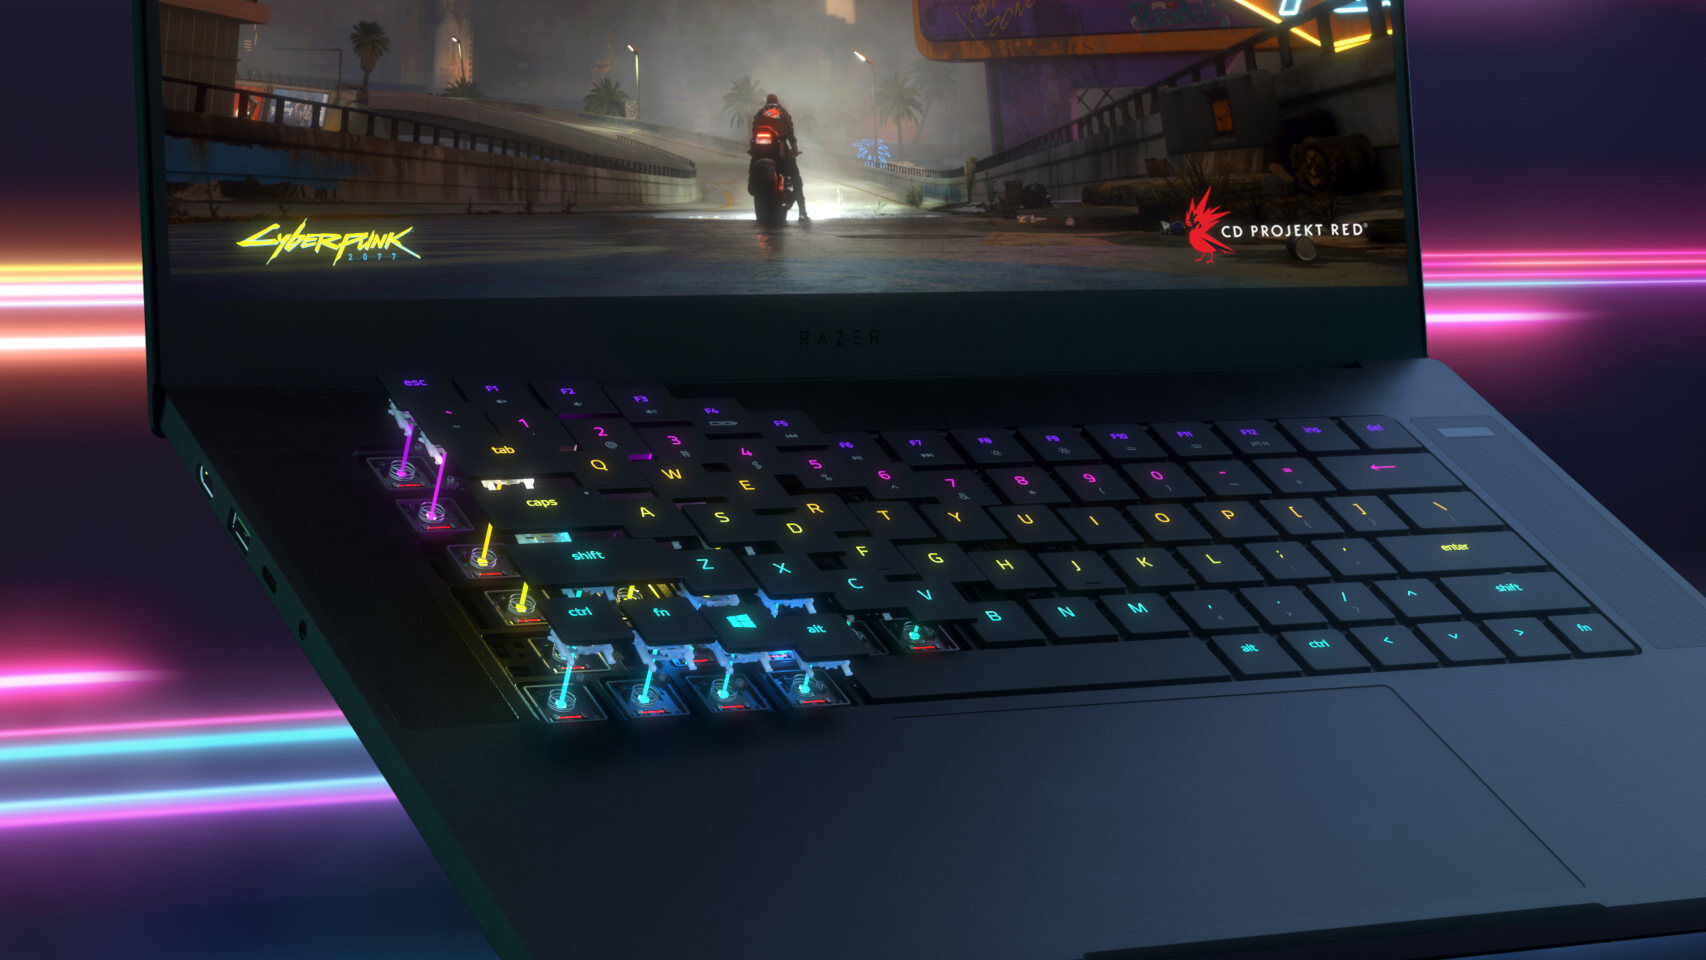 The keyboard of the new Razer laptop works with light. Yes light